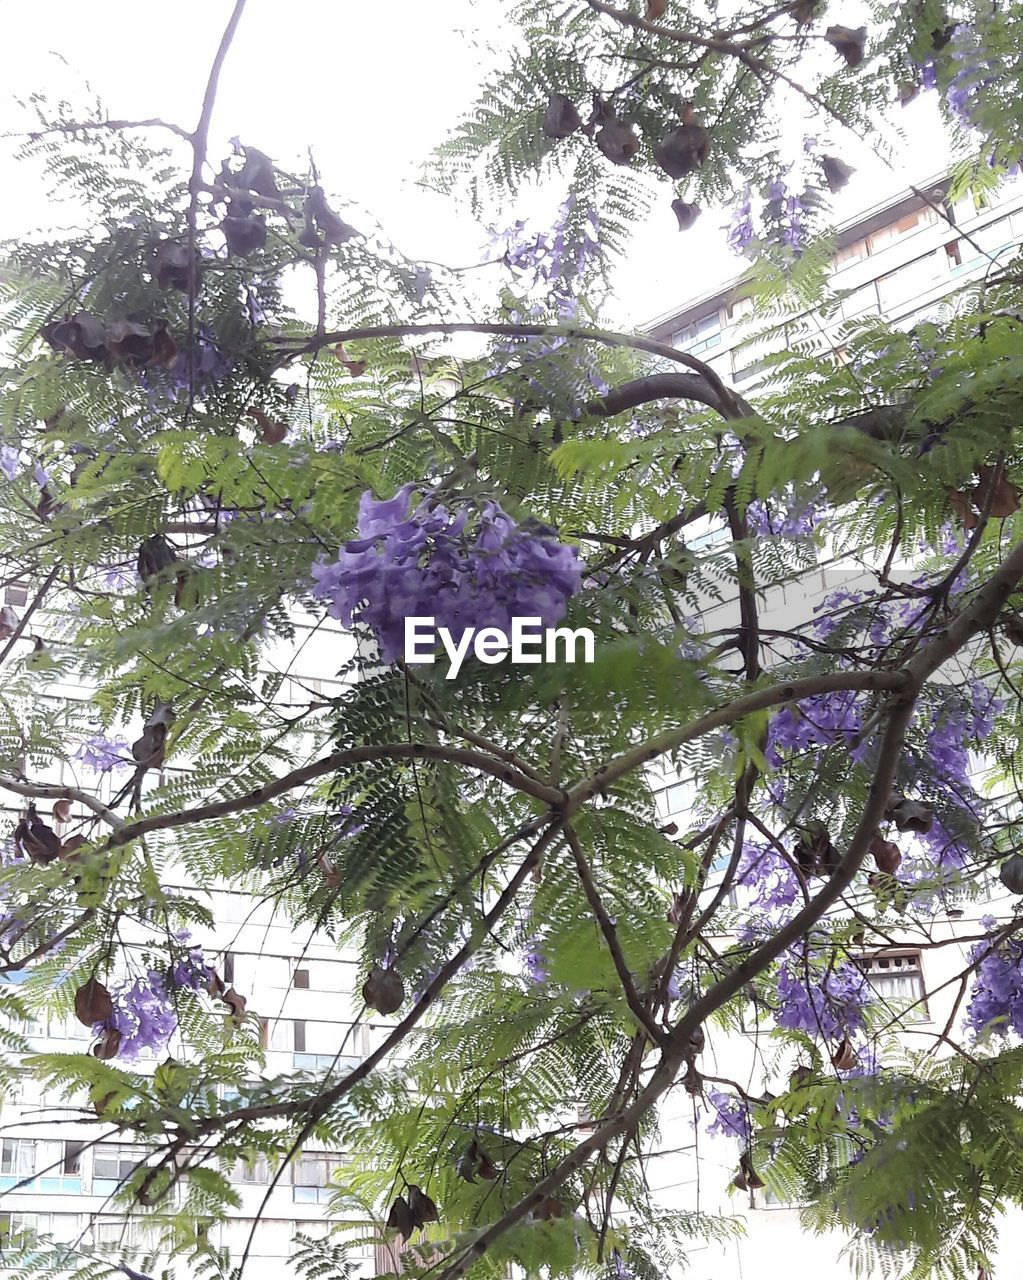 flower, growth, branch, tree, nature, low angle view, beauty in nature, fragility, blossom, purple, freshness, botany, no people, day, hanging, springtime, petal, outdoors, plant, close-up, flower head, sky